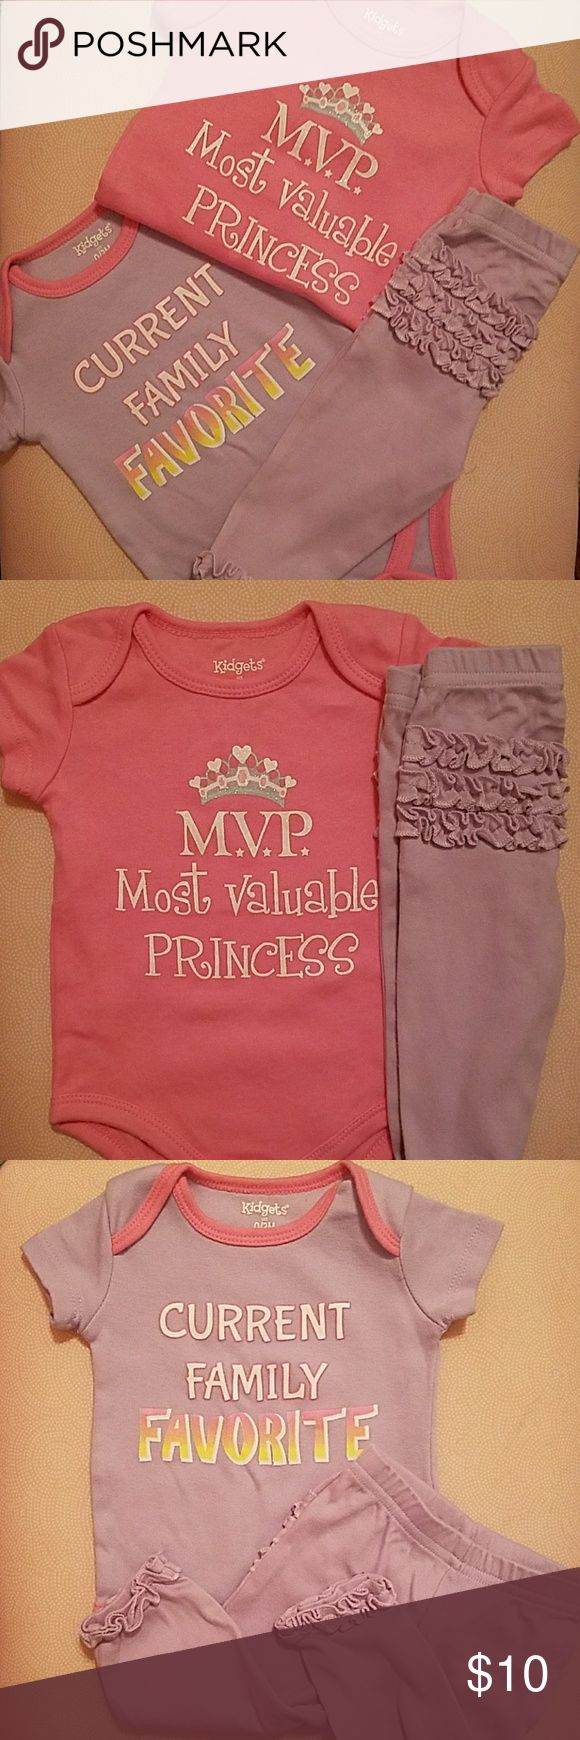 "3pc bundle - Cute baby girl one pieces with pants Of course your ""most valuable princess"" is the ""current family favorite""! Enjoy this great deal with two baby girls 1 pieces and a matching pair of pants. Never worn,  ready to ship! Matching Sets"